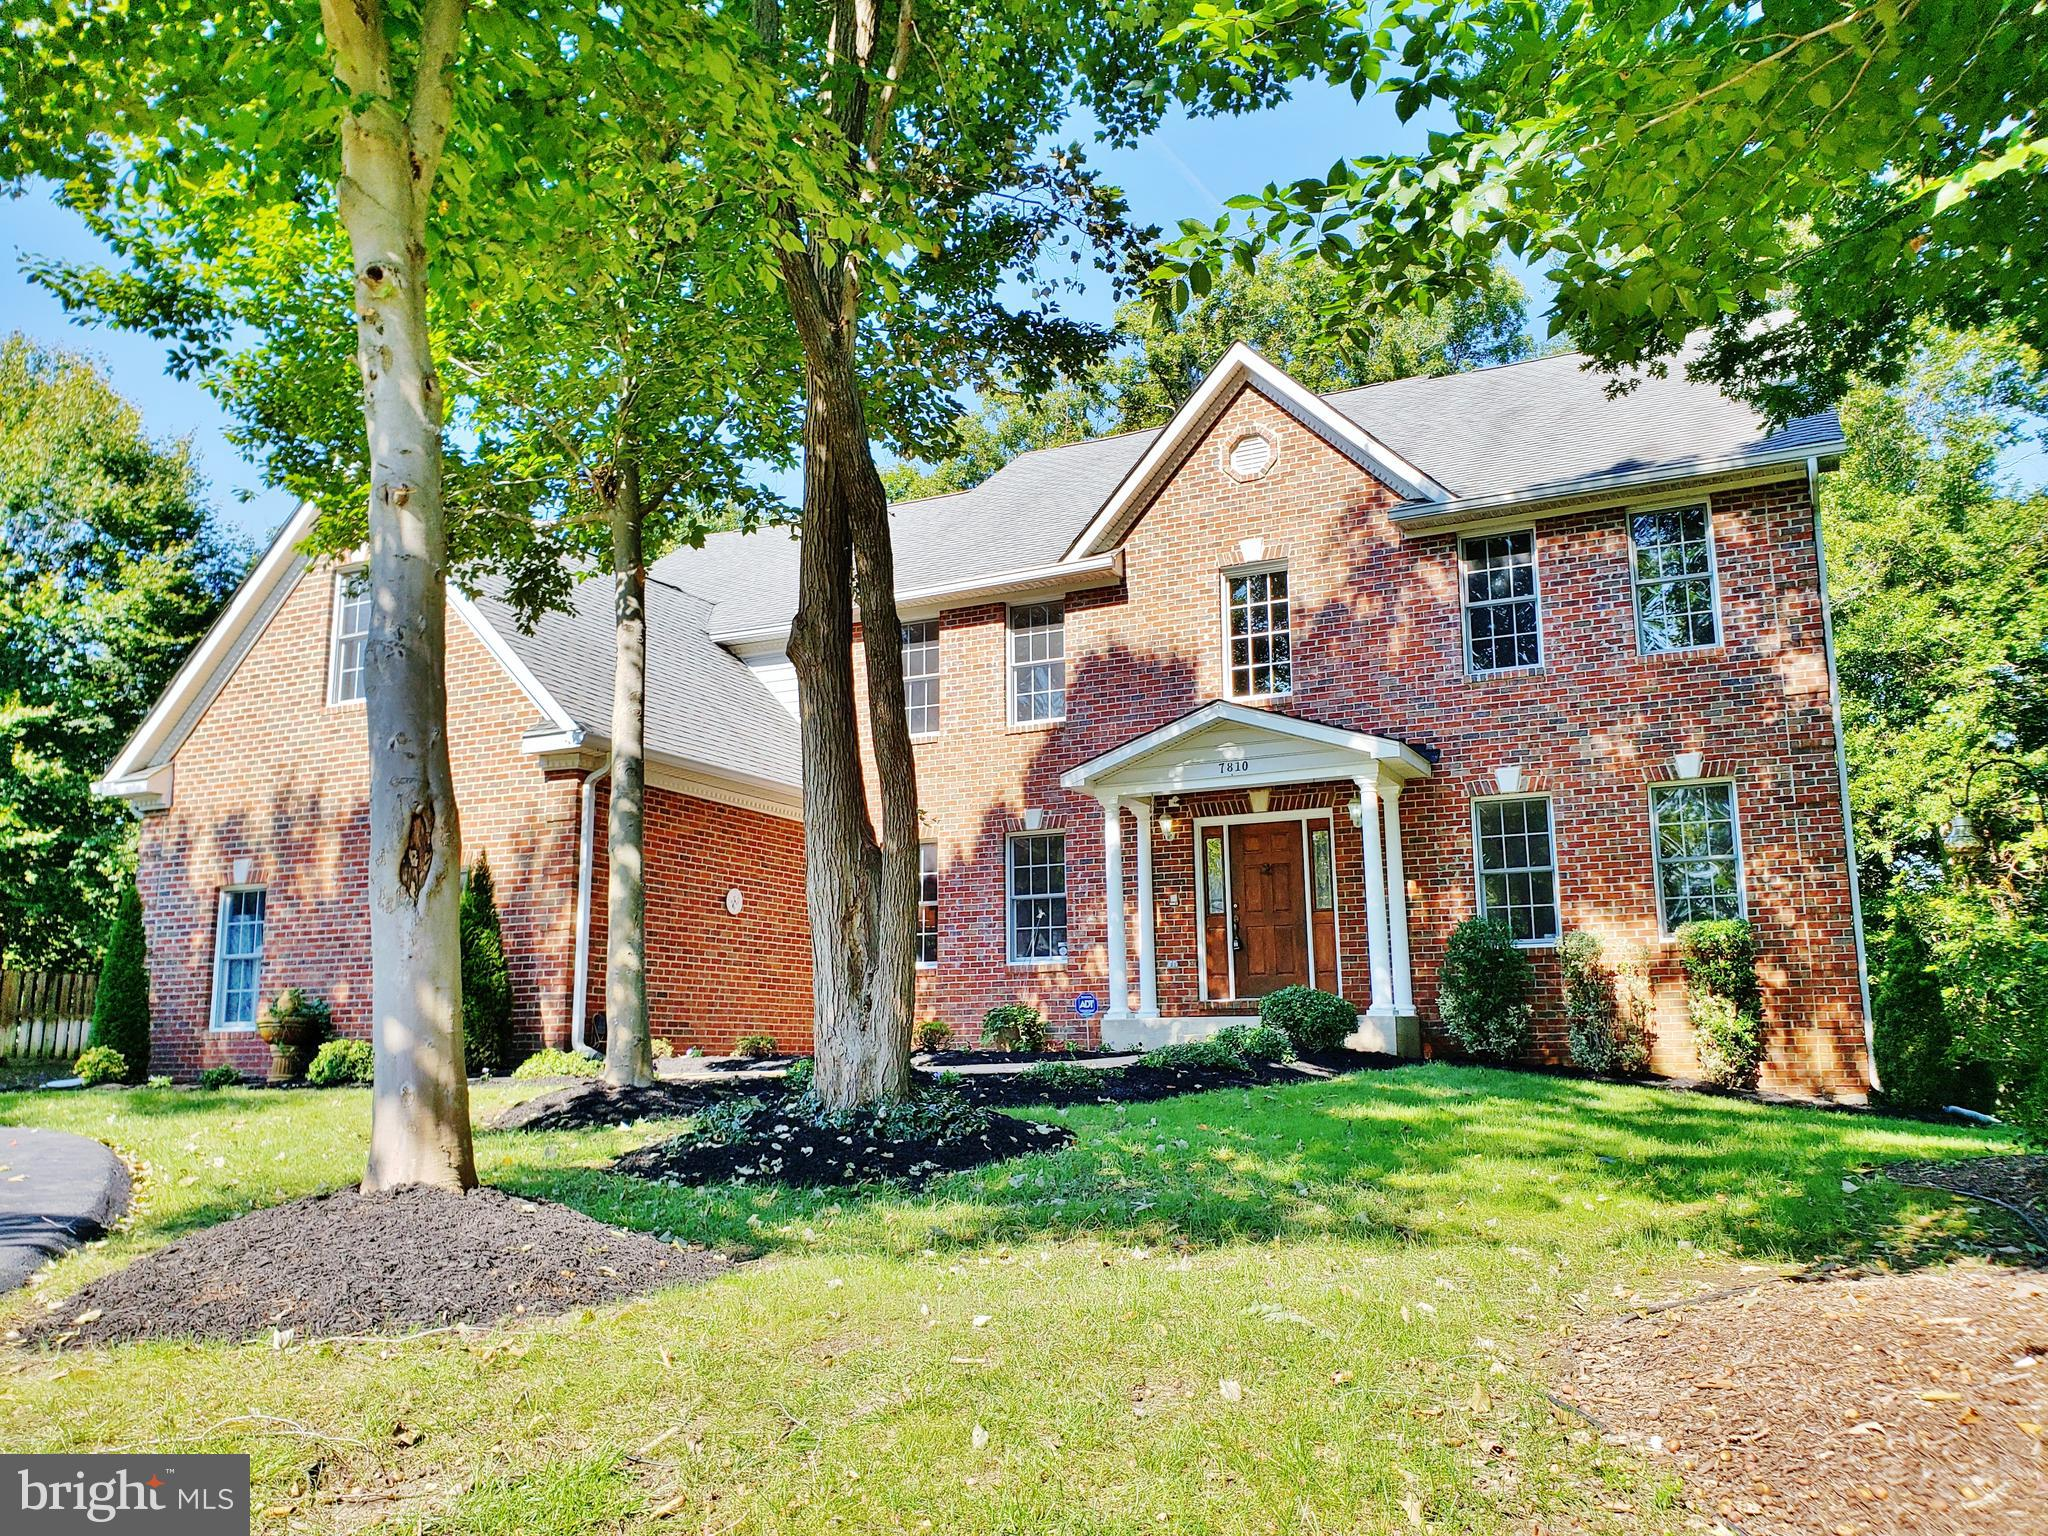 7810 CREEKSIDE VIEW LANE, SPRINGFIELD, VA 22153